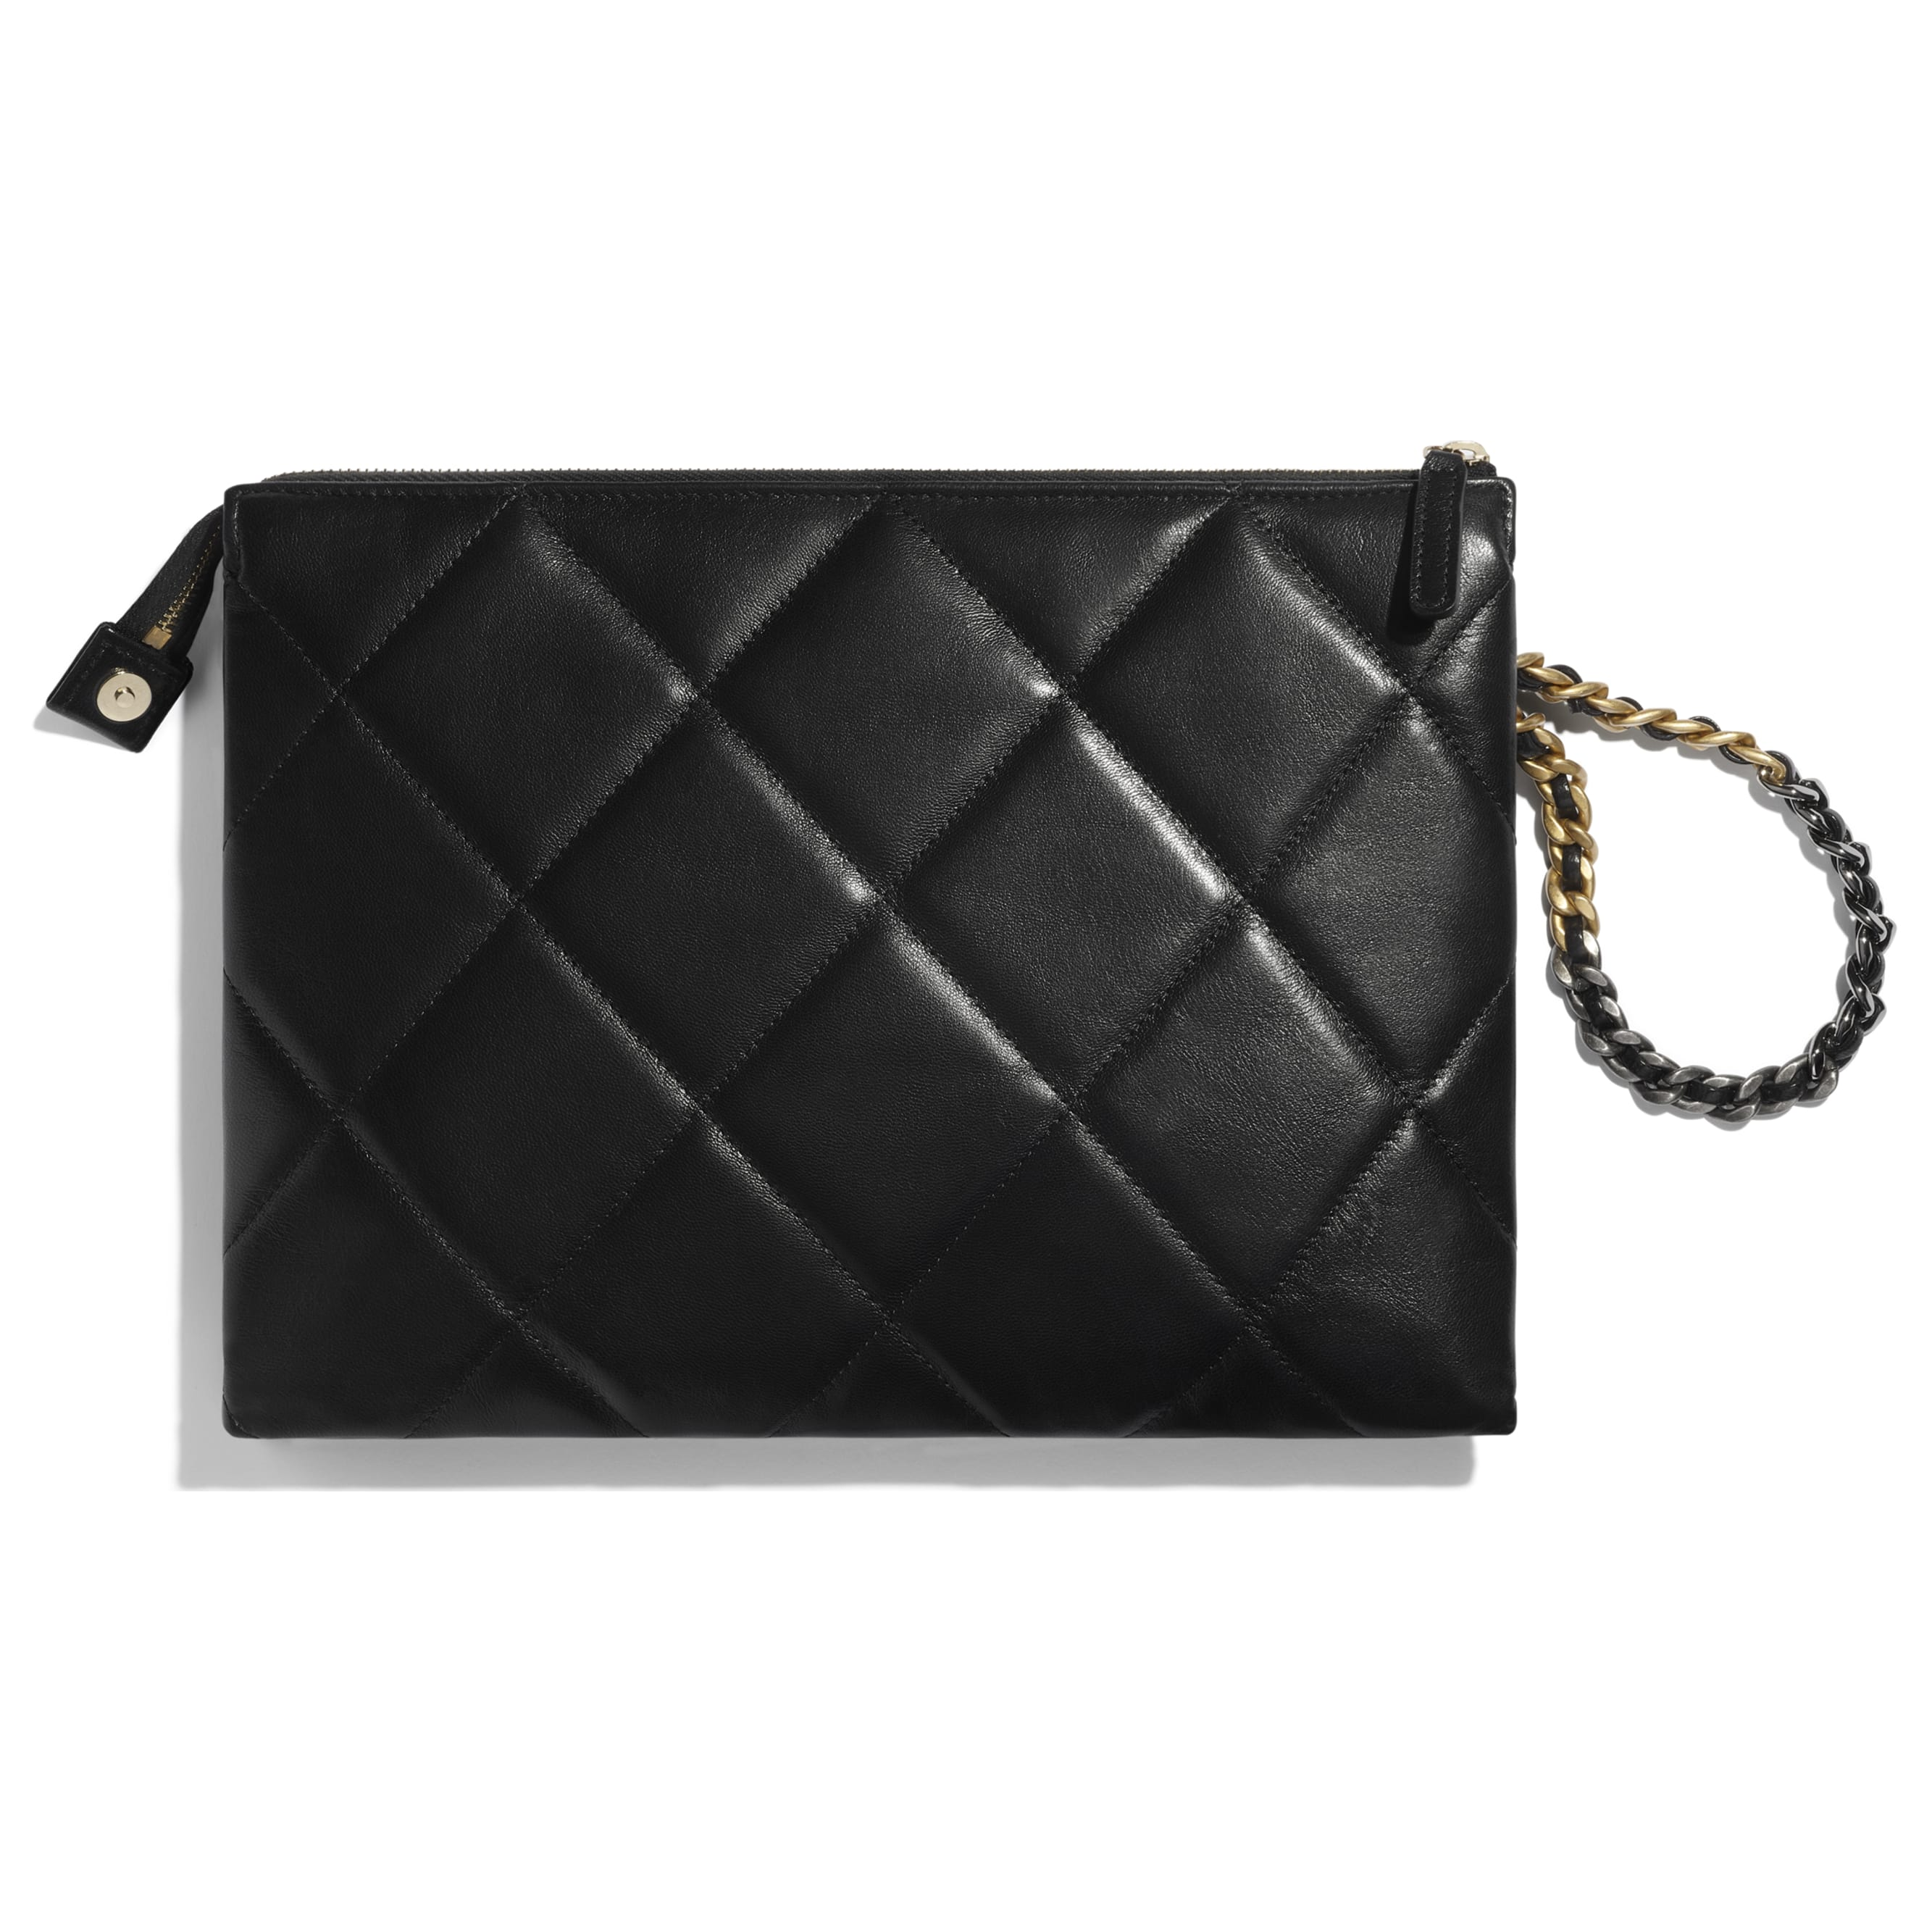 CHANEL 19 Pouch with Handle - Black - Shiny Goatskin, Gold-Tone, Silver-Tone & Ruthenium-Finish Metal - CHANEL - Alternative view - see standard sized version